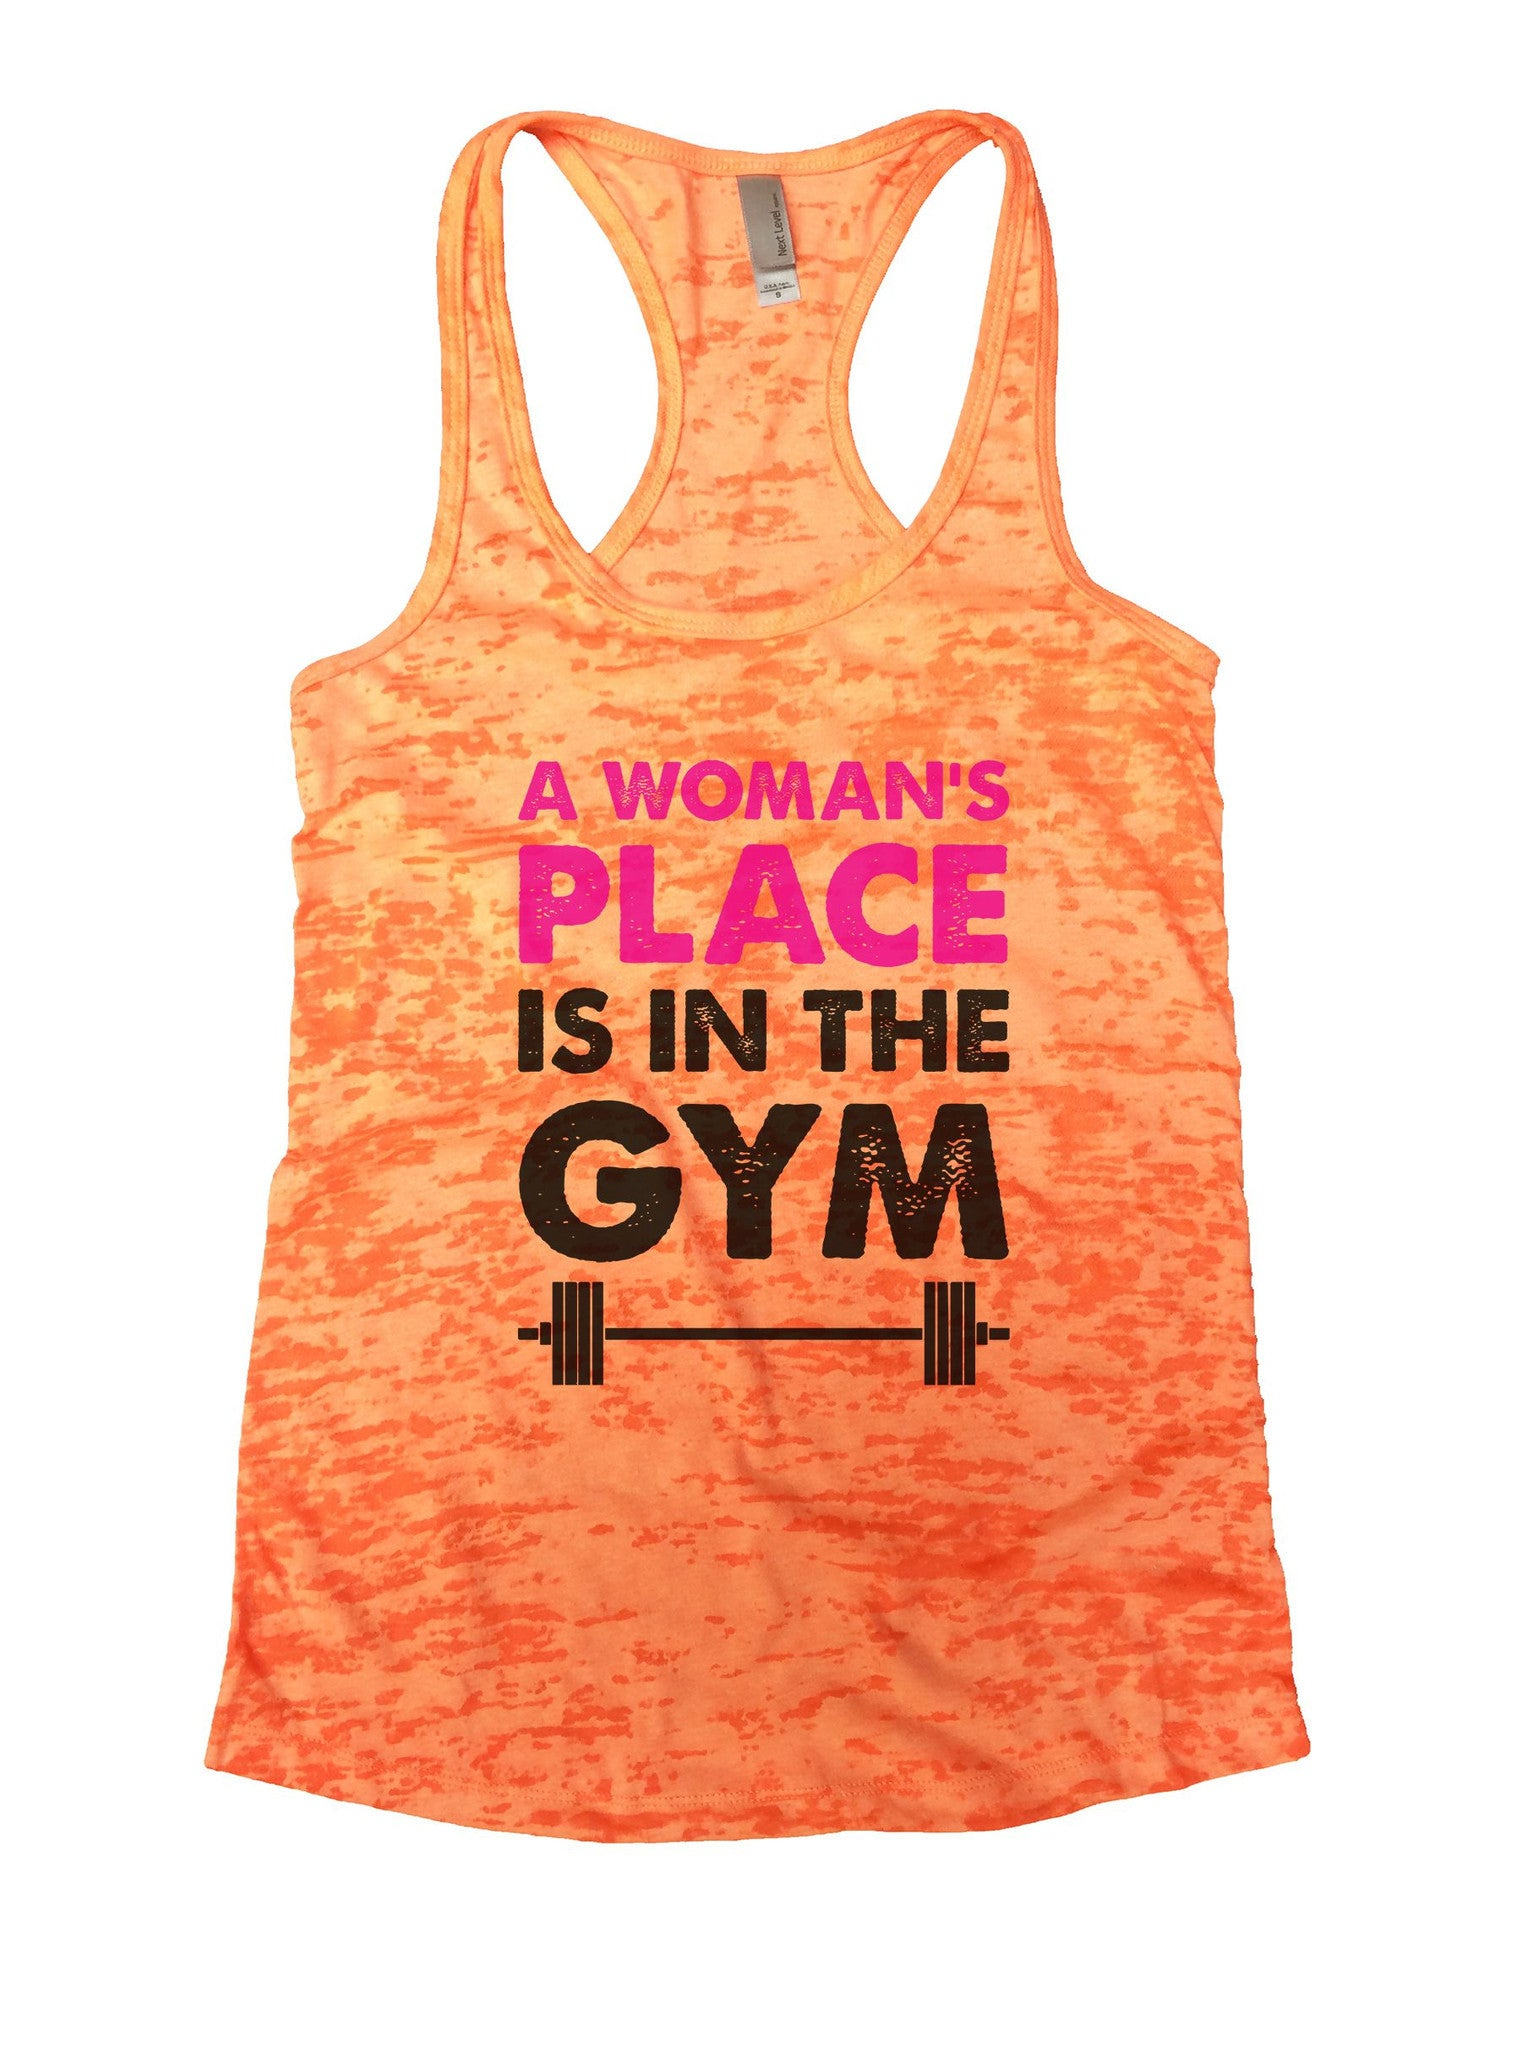 A Woman's Place Is In The Gym Burnout Tank Top By BurnoutTankTops.com - 854 - Funny Shirts Tank Tops Burnouts and Triblends  - 3